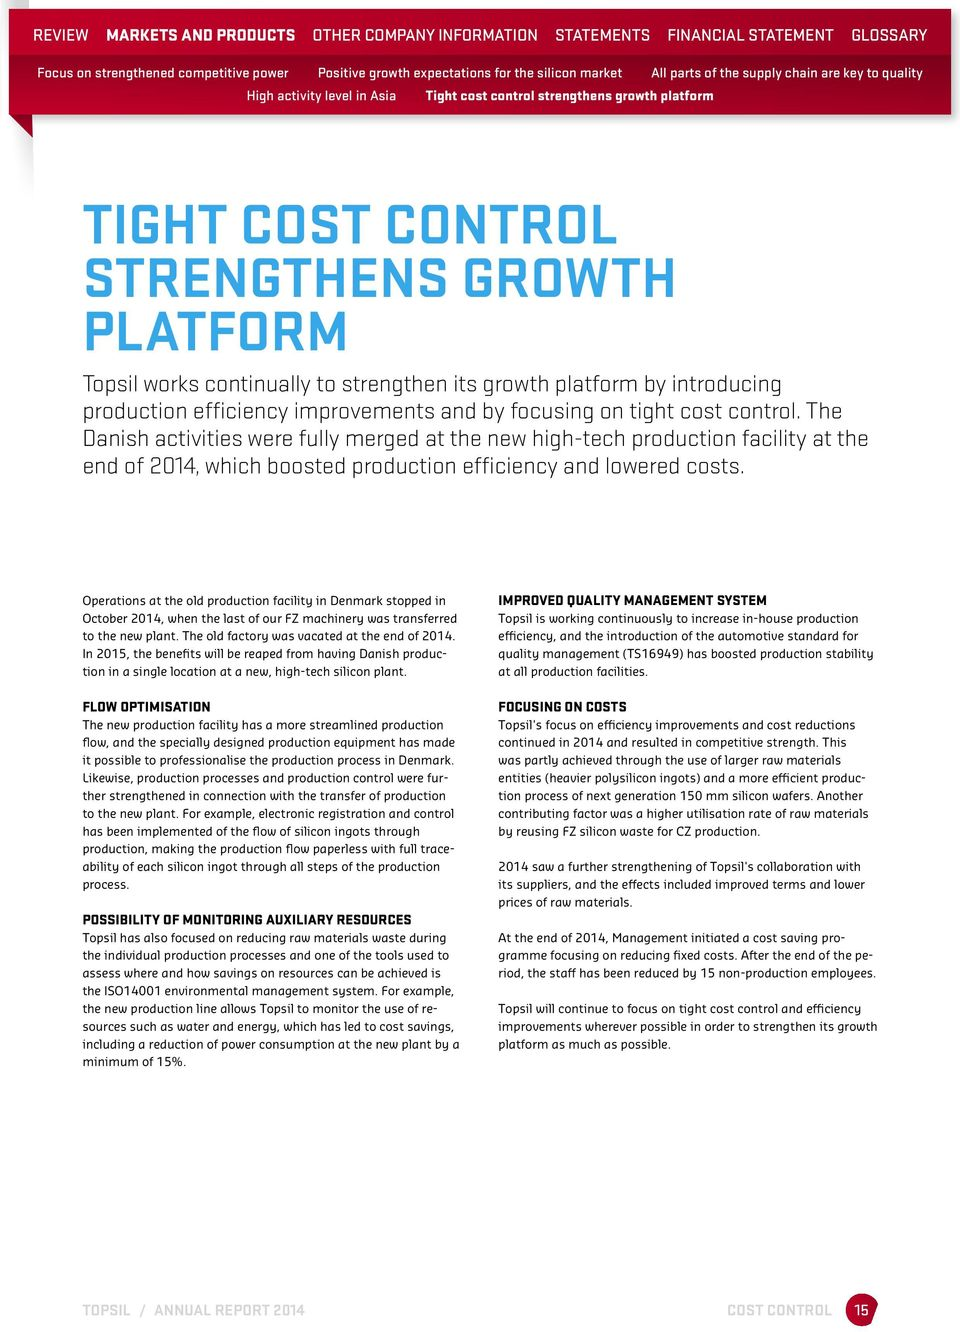 efficiency improvements and by focusing on tight cost control.